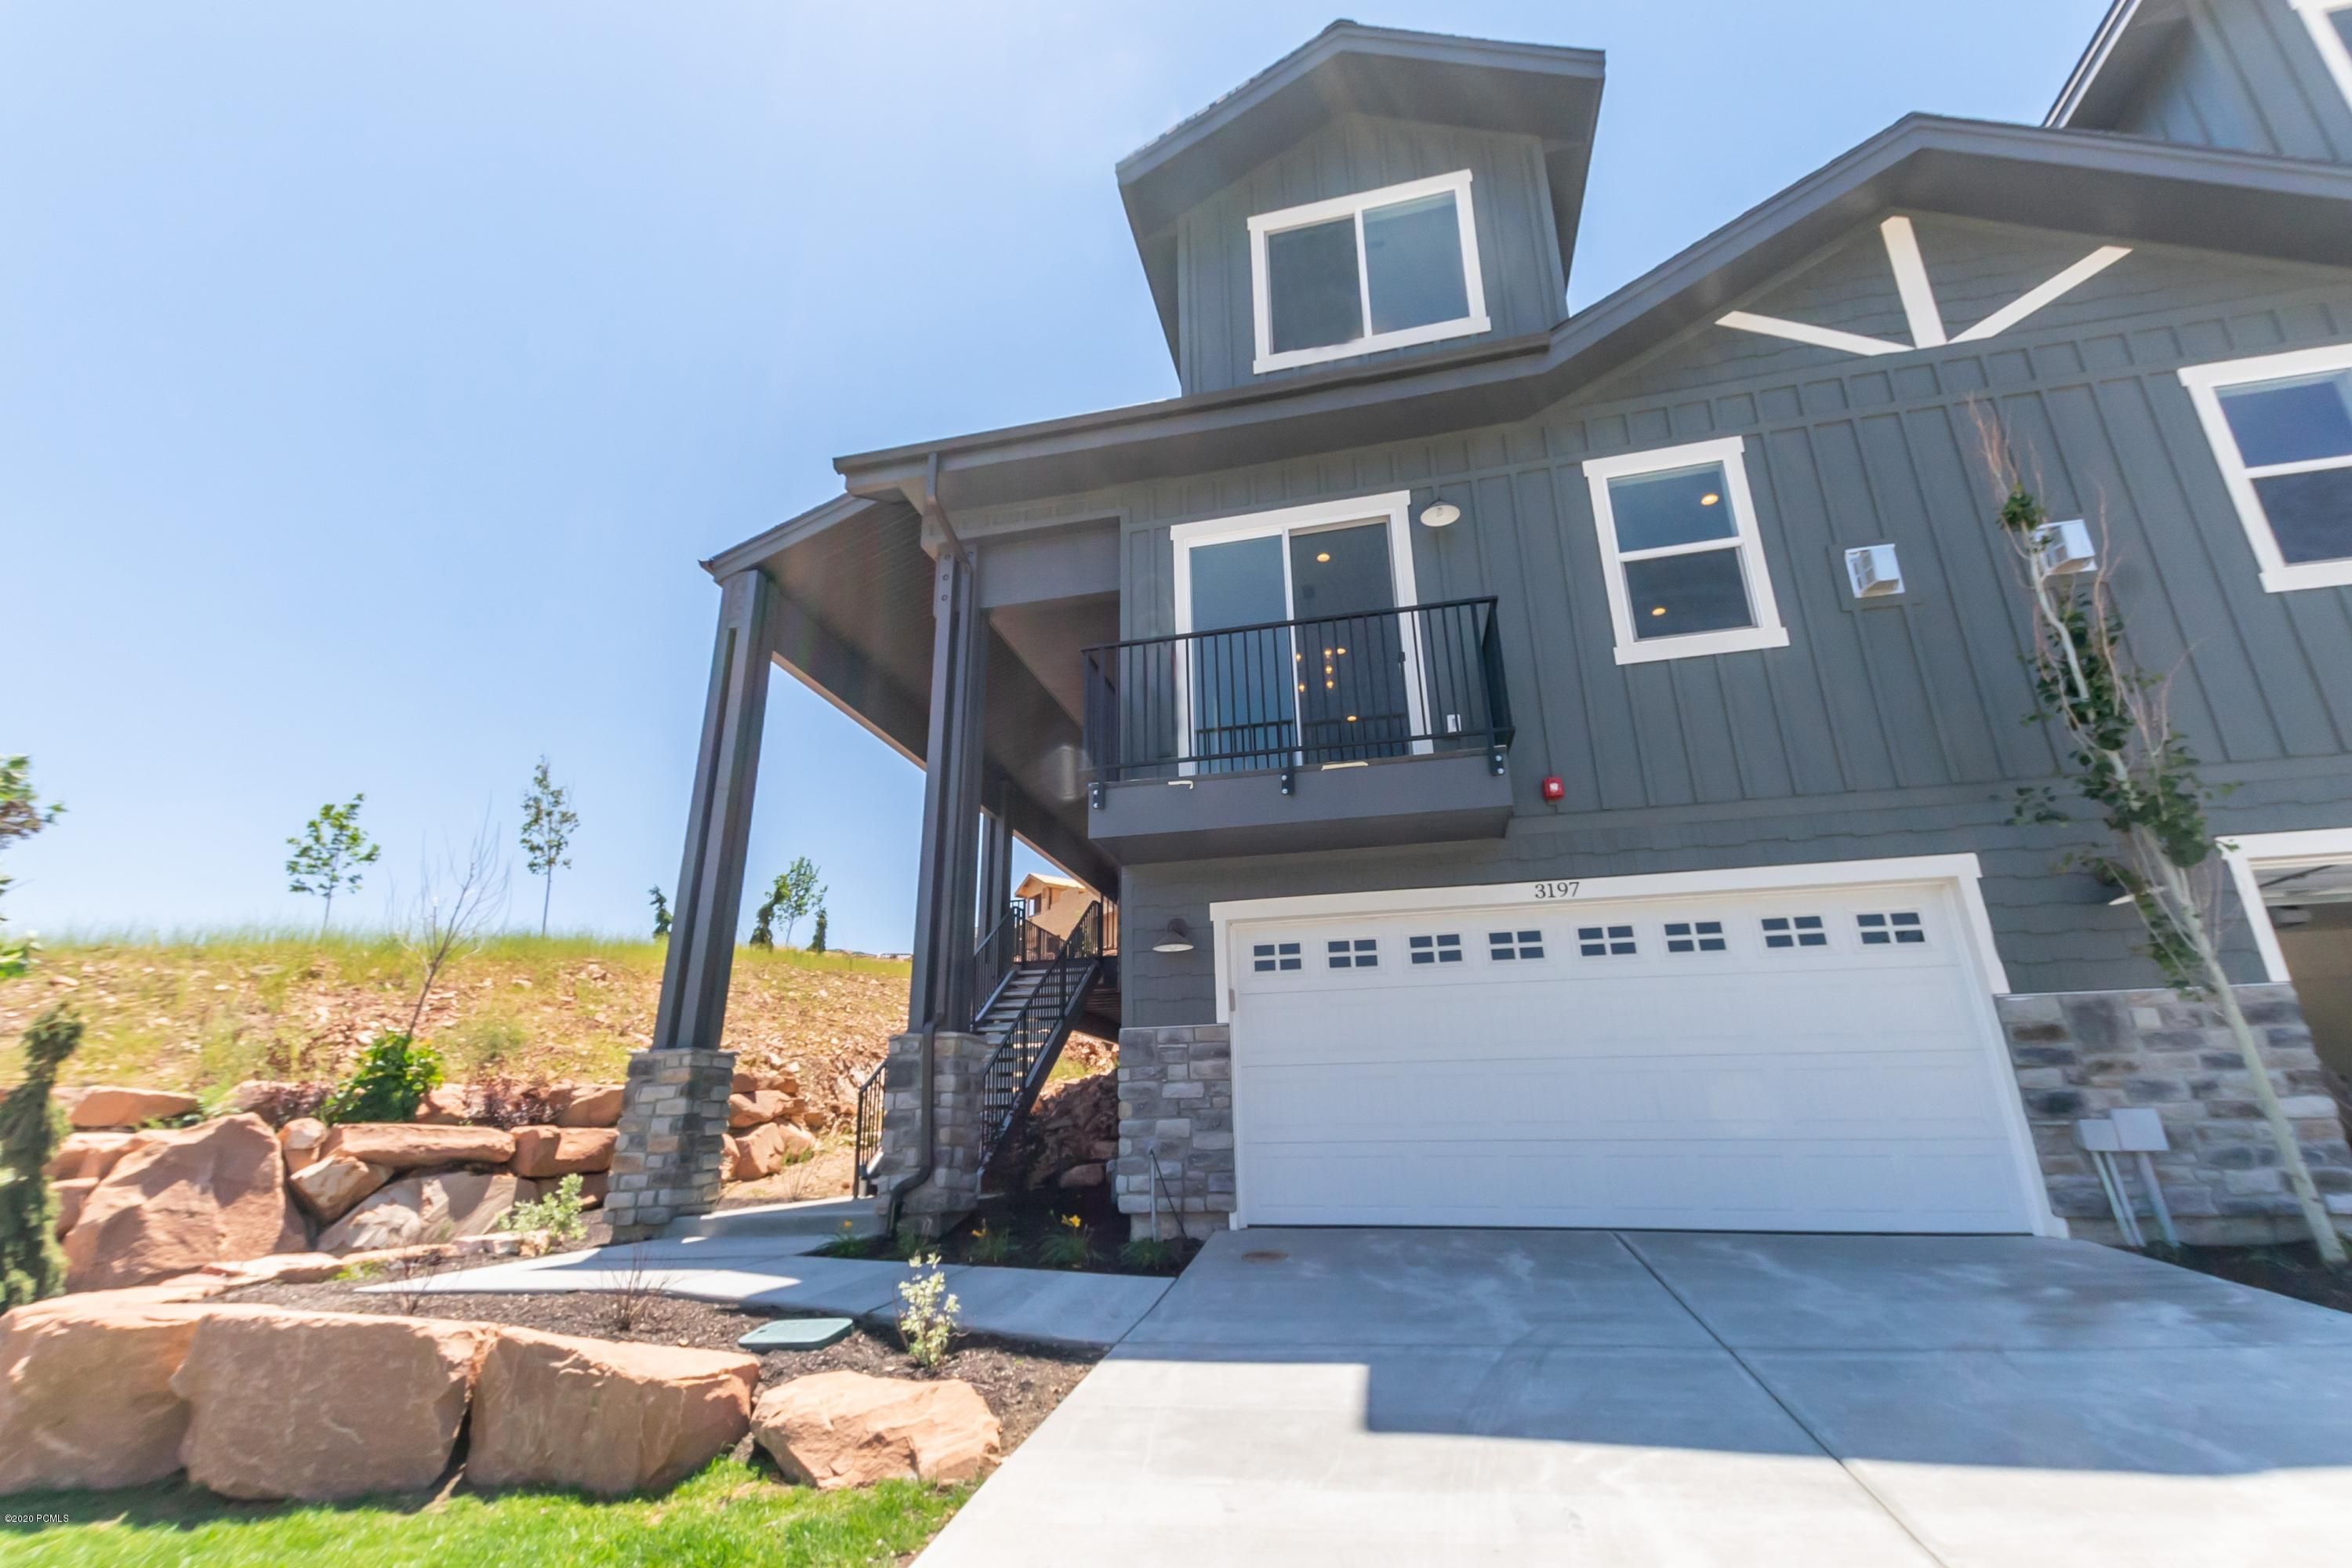 3351 Santa Fe Road, Park City, Utah 84098, 3 Bedrooms Bedrooms, ,3 BathroomsBathrooms,Condominium,For Sale,Santa Fe,12003561